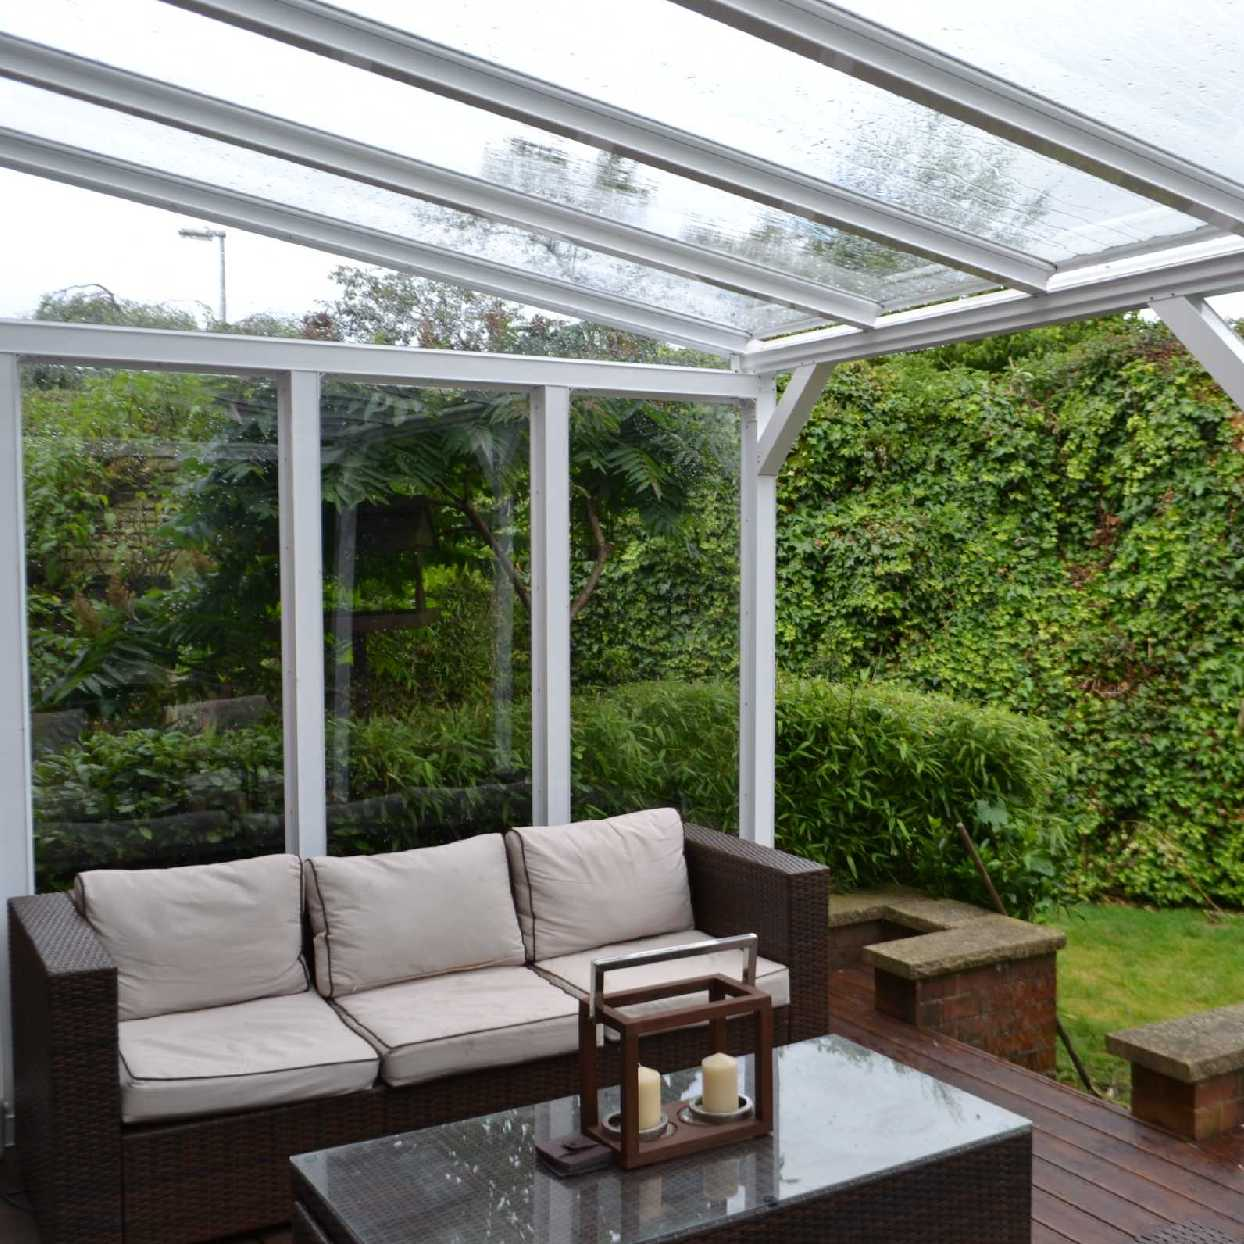 Omega Smart White Lean-To Canopy with 6mm Glass Clear Plate Polycarbonate Glazing - 4.2m (W) x 2.5m (P), (3) Supporting Posts